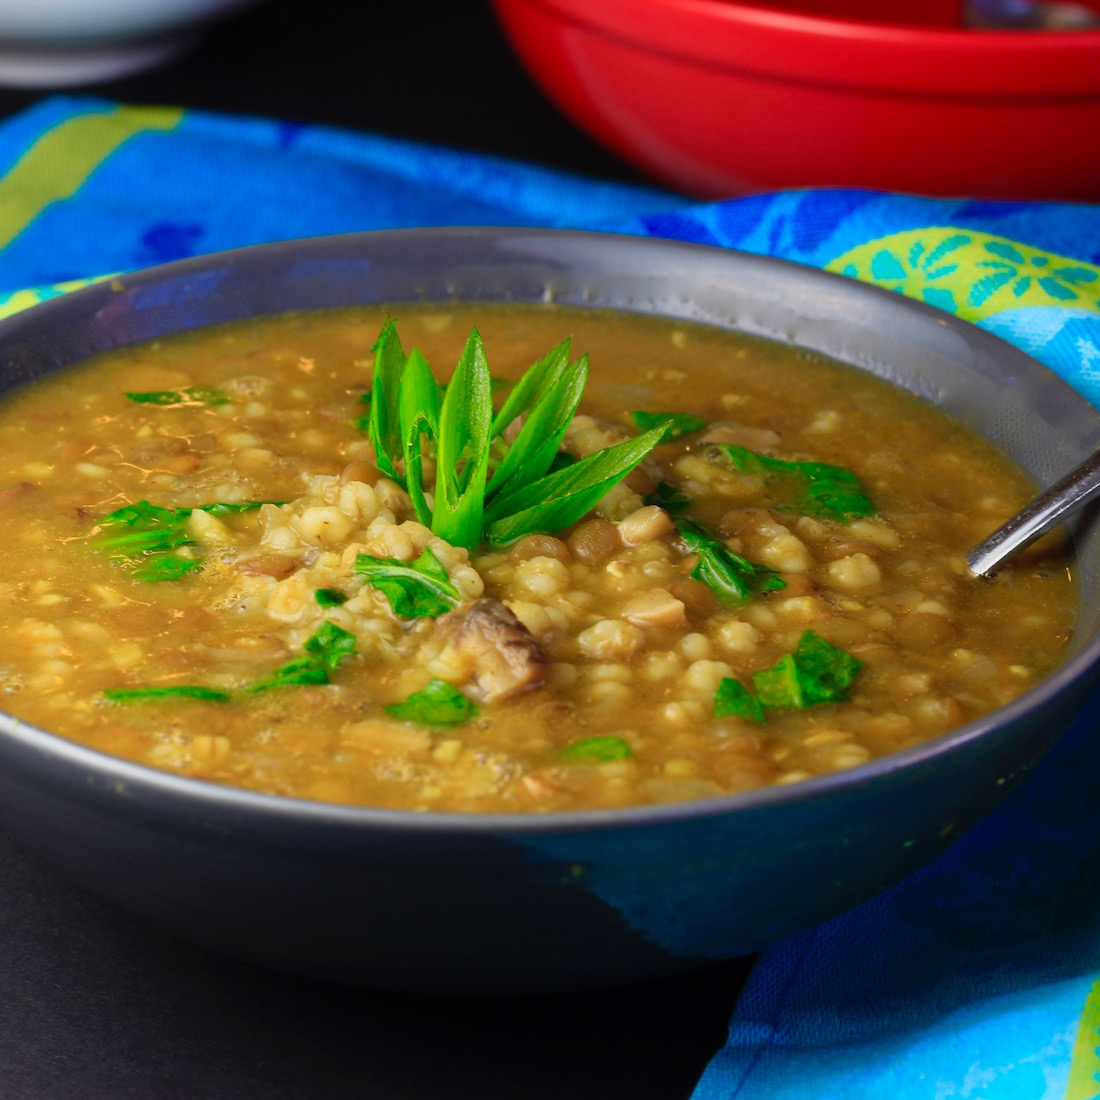 curried-mushroom-barley-lentil-soup-with-spinach